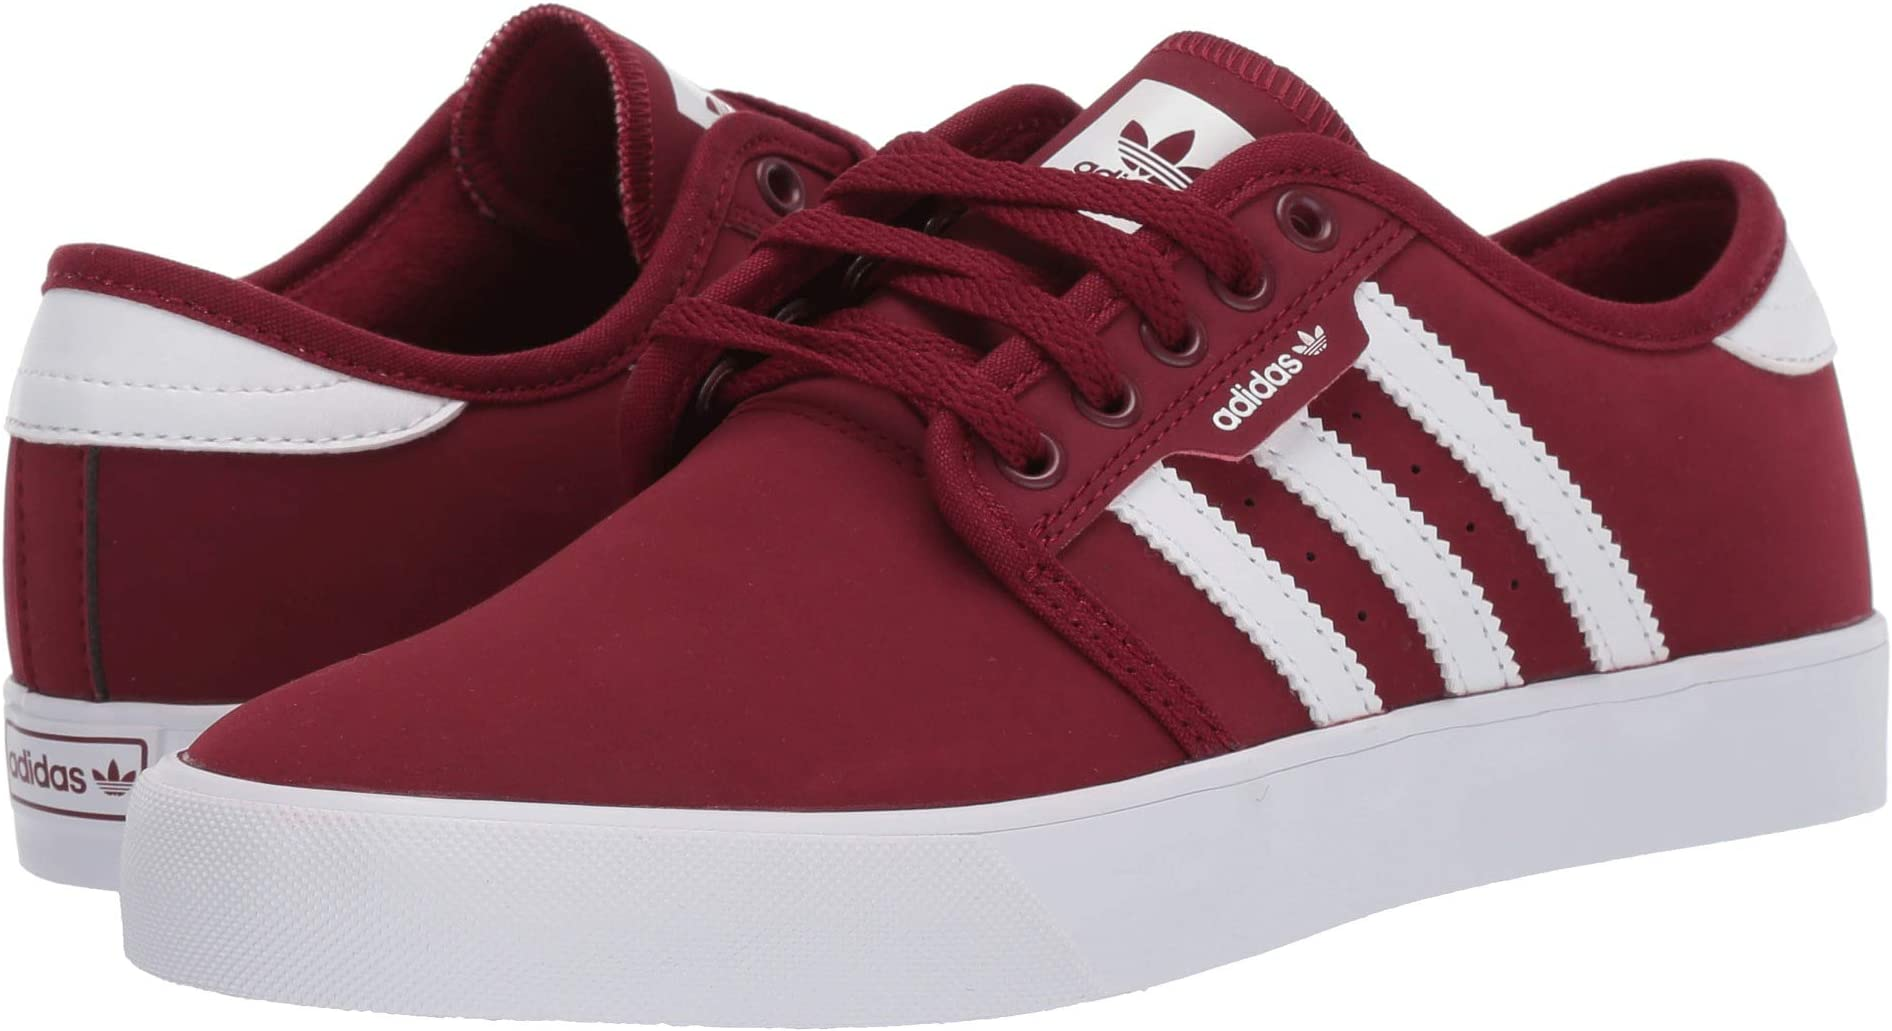 83dcea07ef8d adidas Shoes, Clothing, Accessories, Bags, and more. | Zappos.com